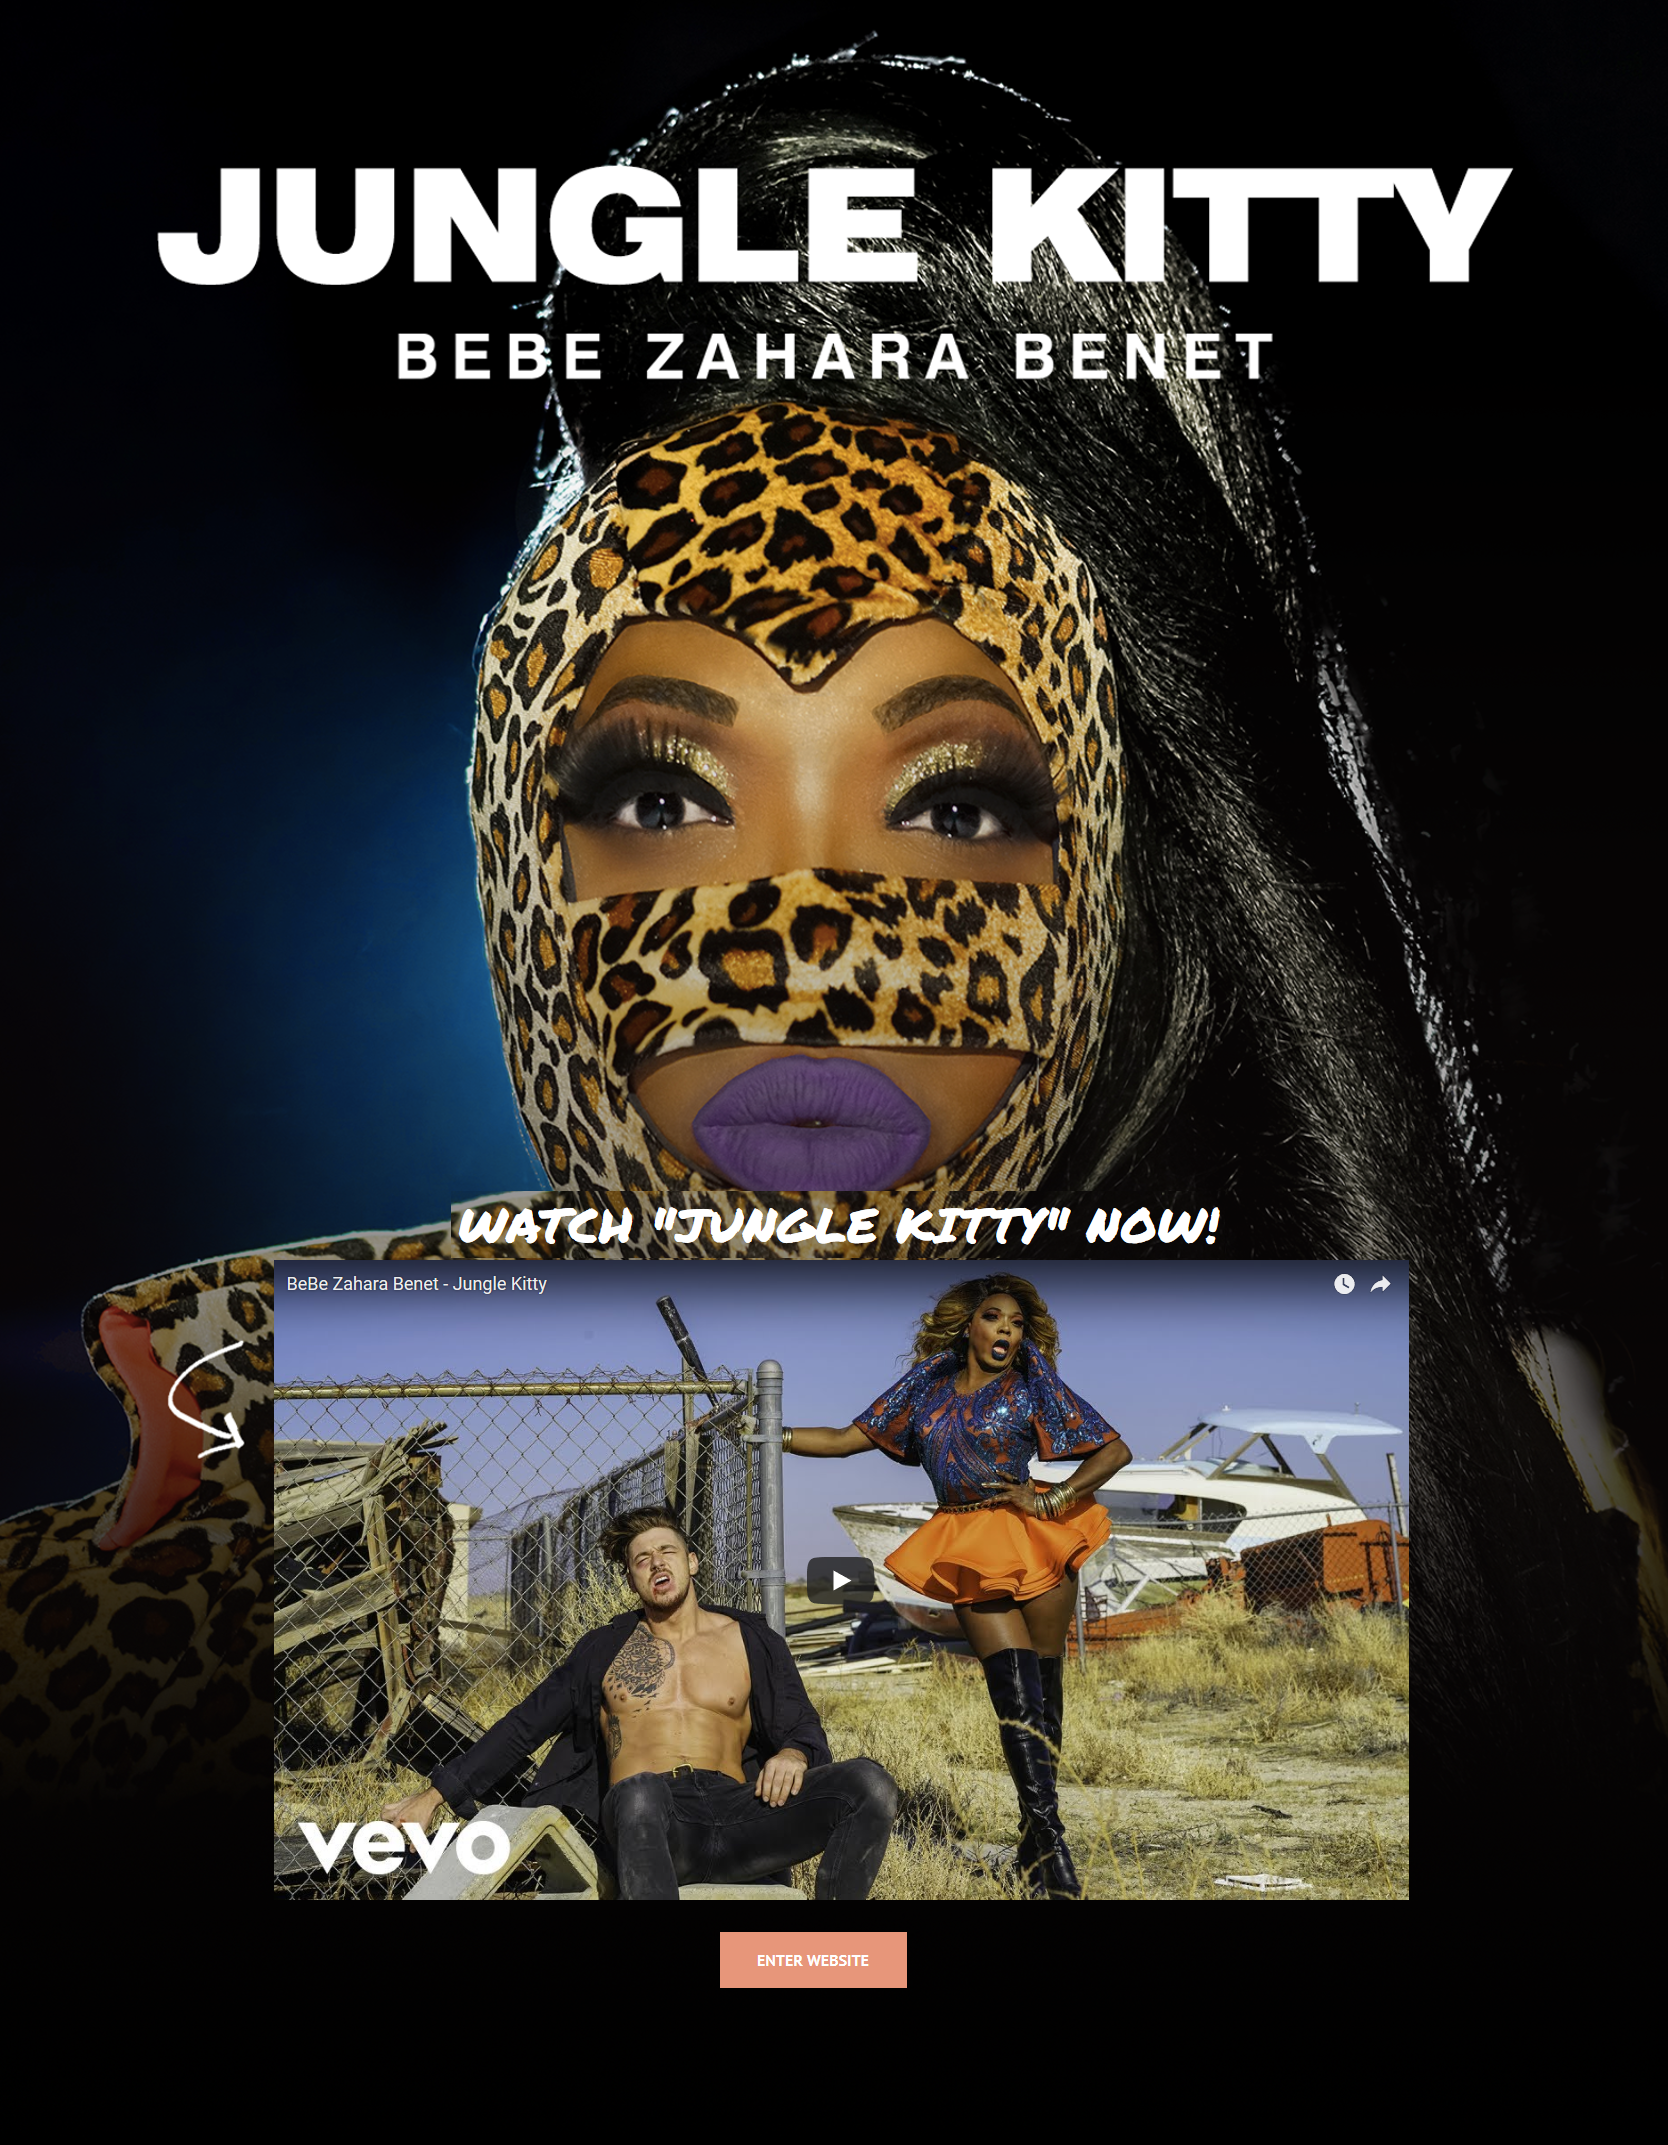 Bebe Zahara Benet - splash page examples - Tips from the pros